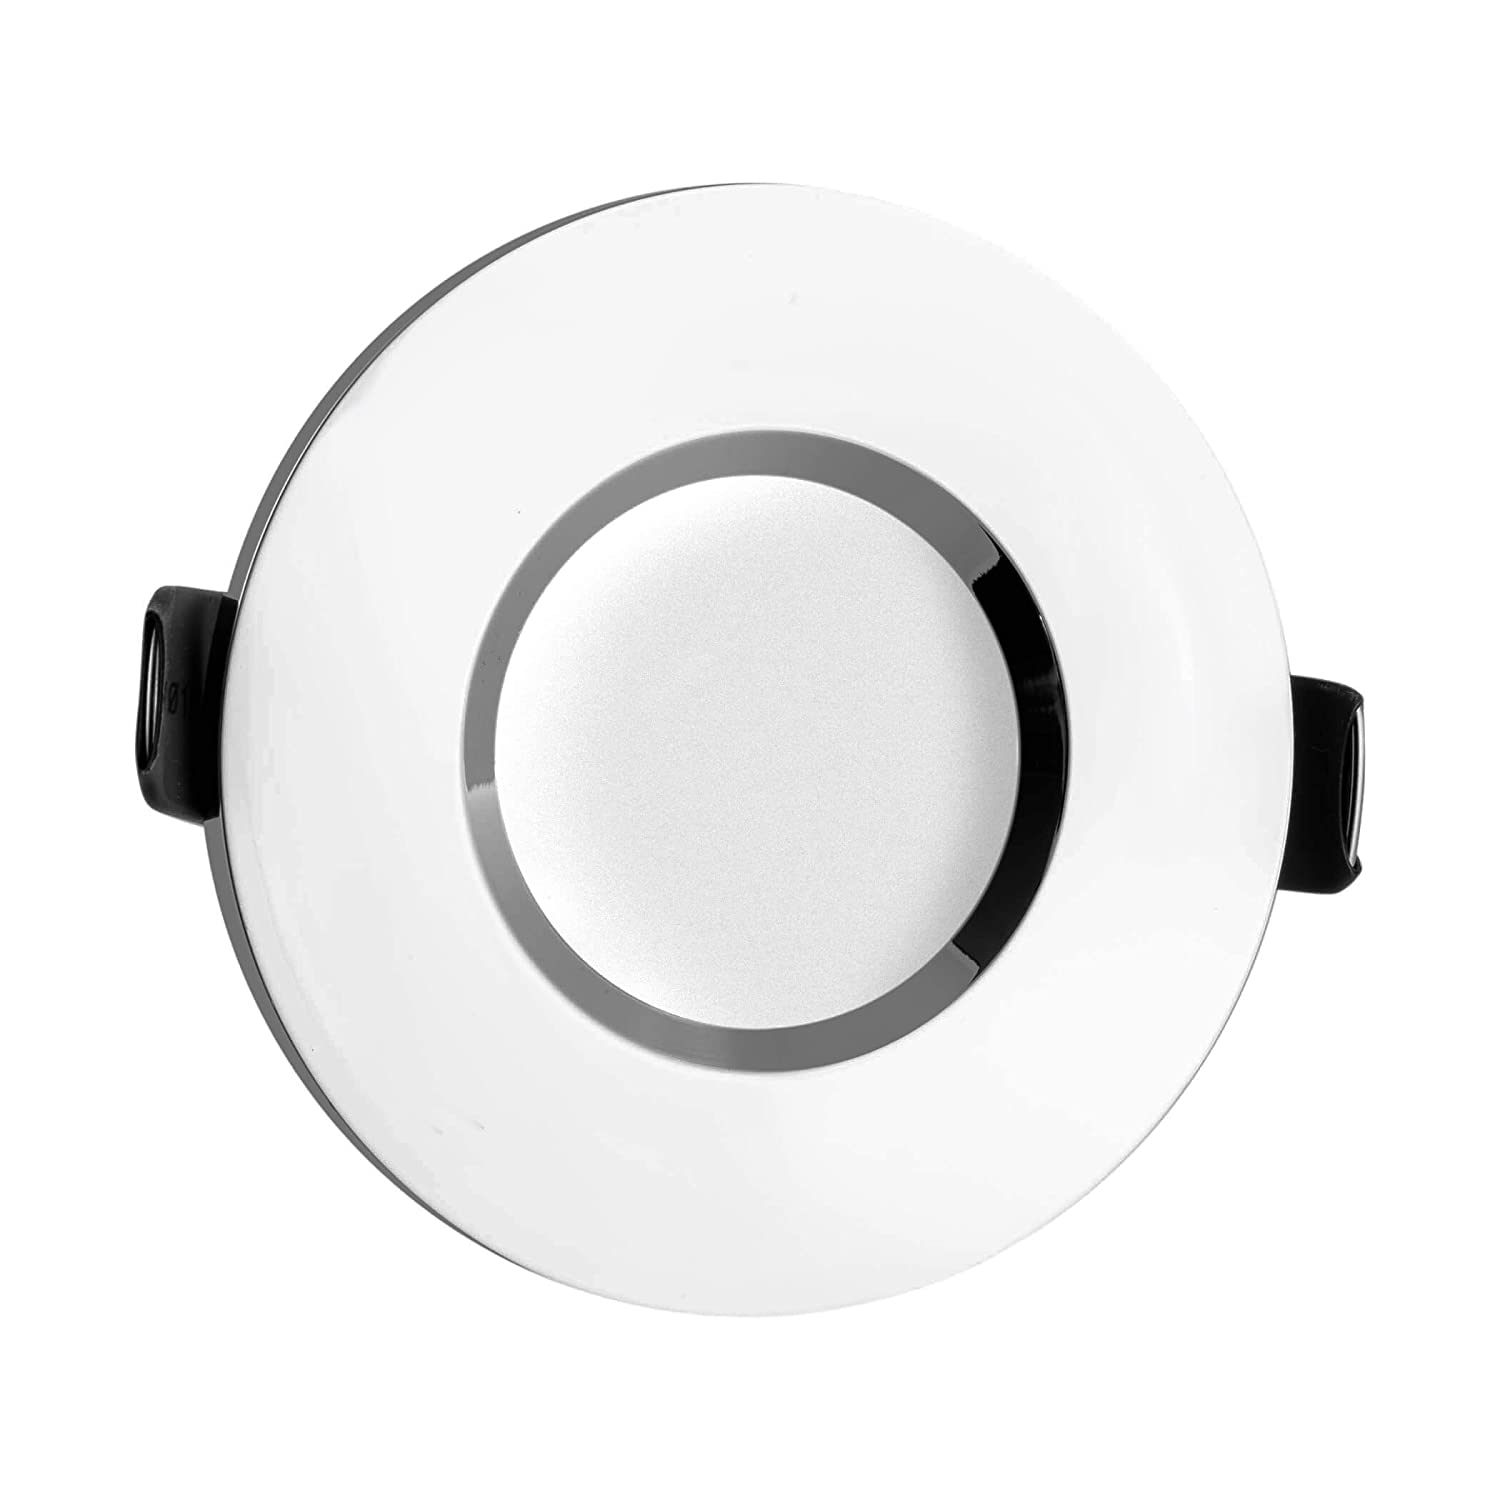 Sebson Downlight Type 10 Bathroom Ip44 Aluminium Silver Chrome Brushed Satin Light Pull Cord Switch Amazoncouk Lighting Led Halogen Incl Gu10 Socket Mouting Frame 84 X 27mm Recessed